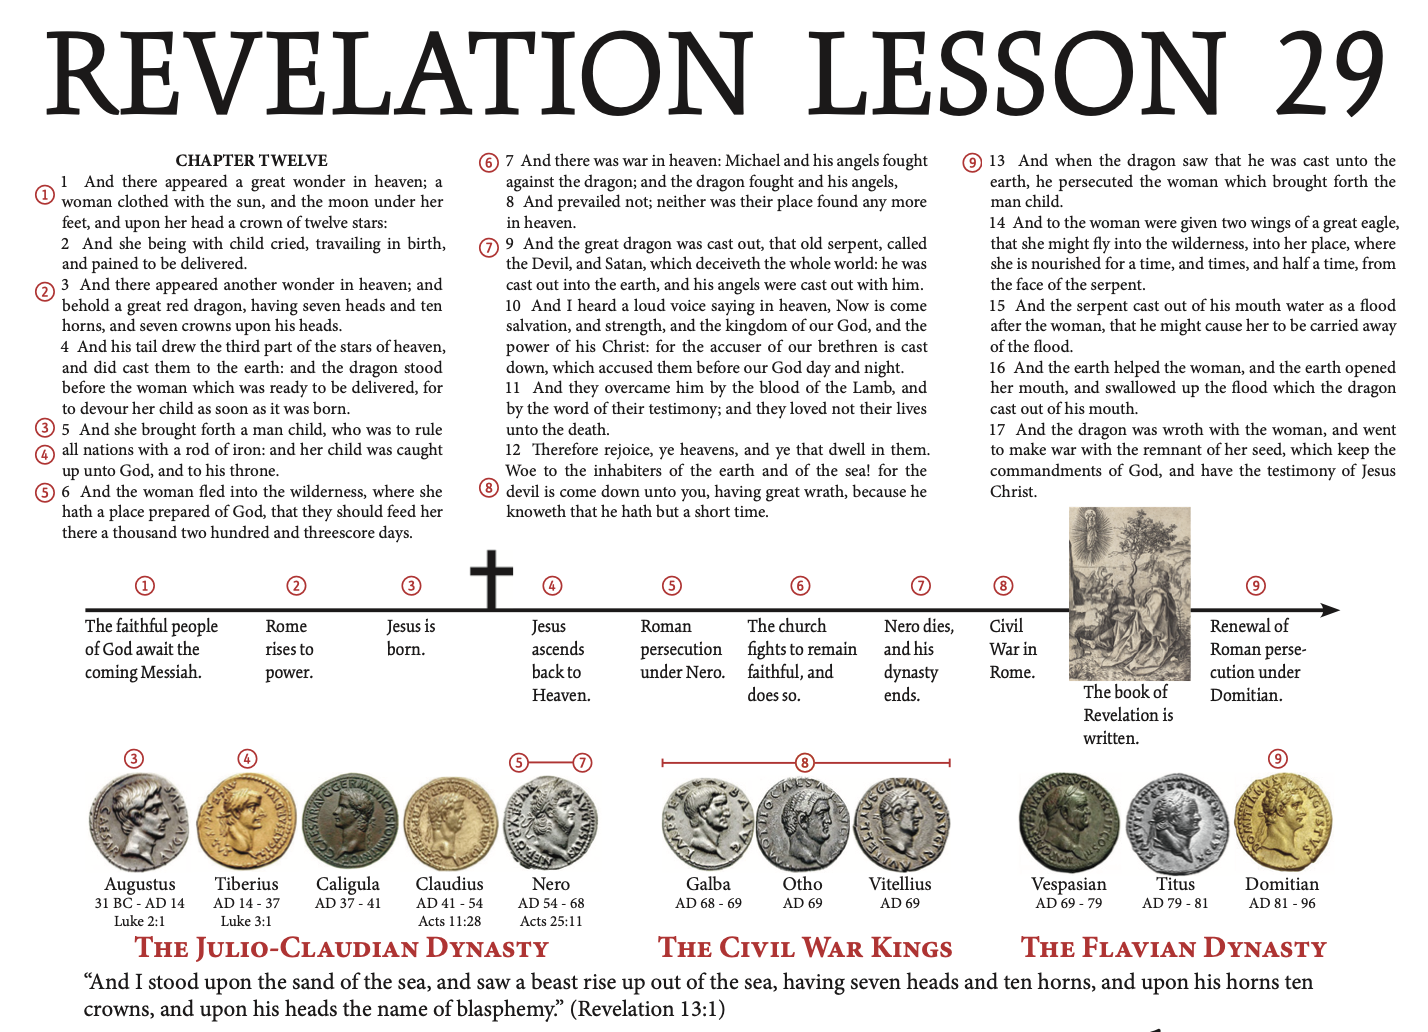 Timeline for Revelation Chapter 12